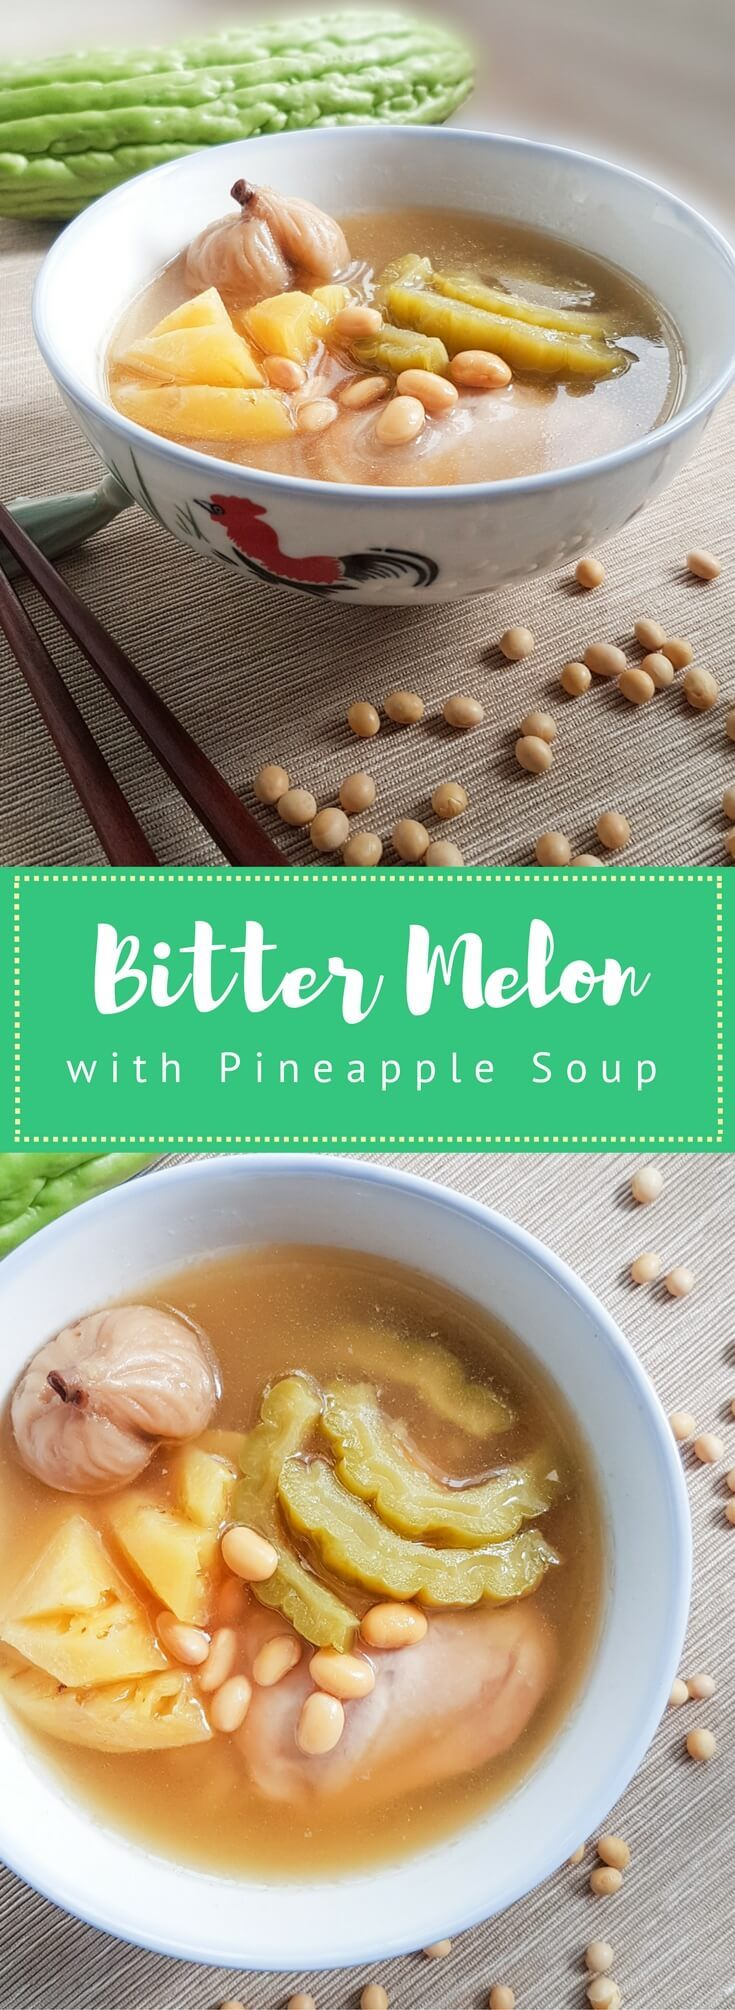 Bitter Melon Soup with Chicken and Pineapple #melonrecipes